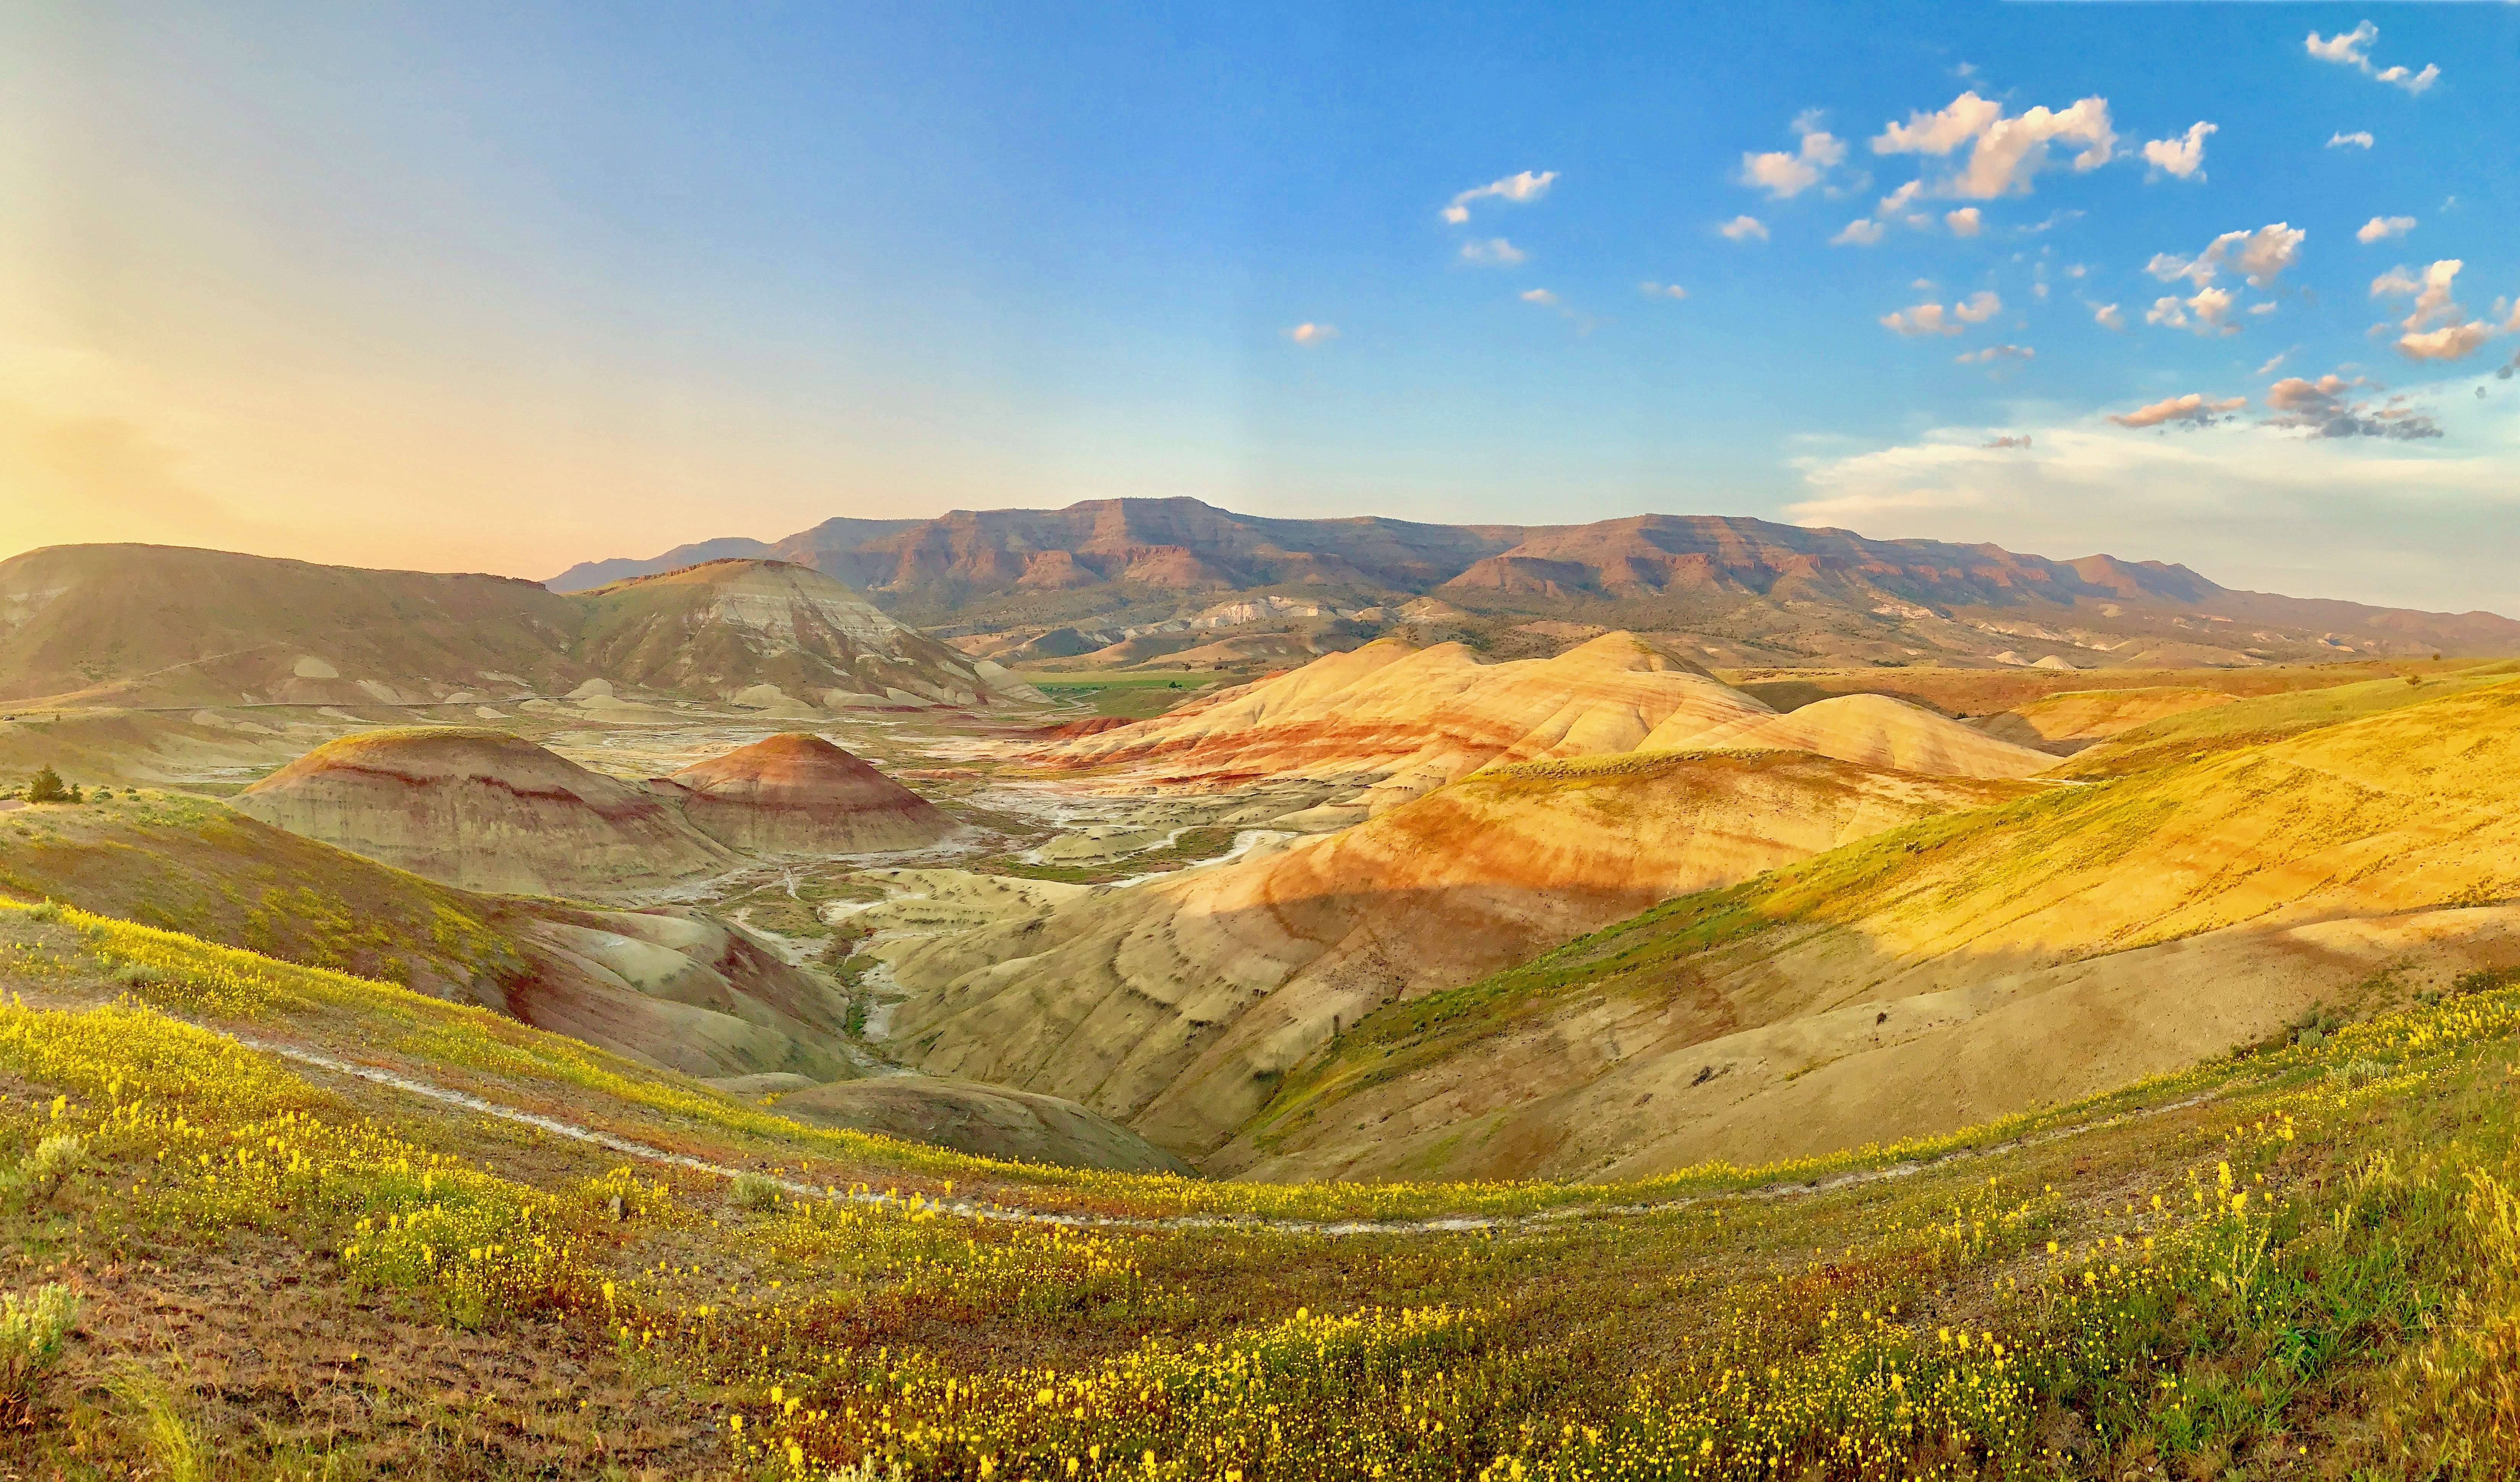 Painted hills friday pm overlook pano light